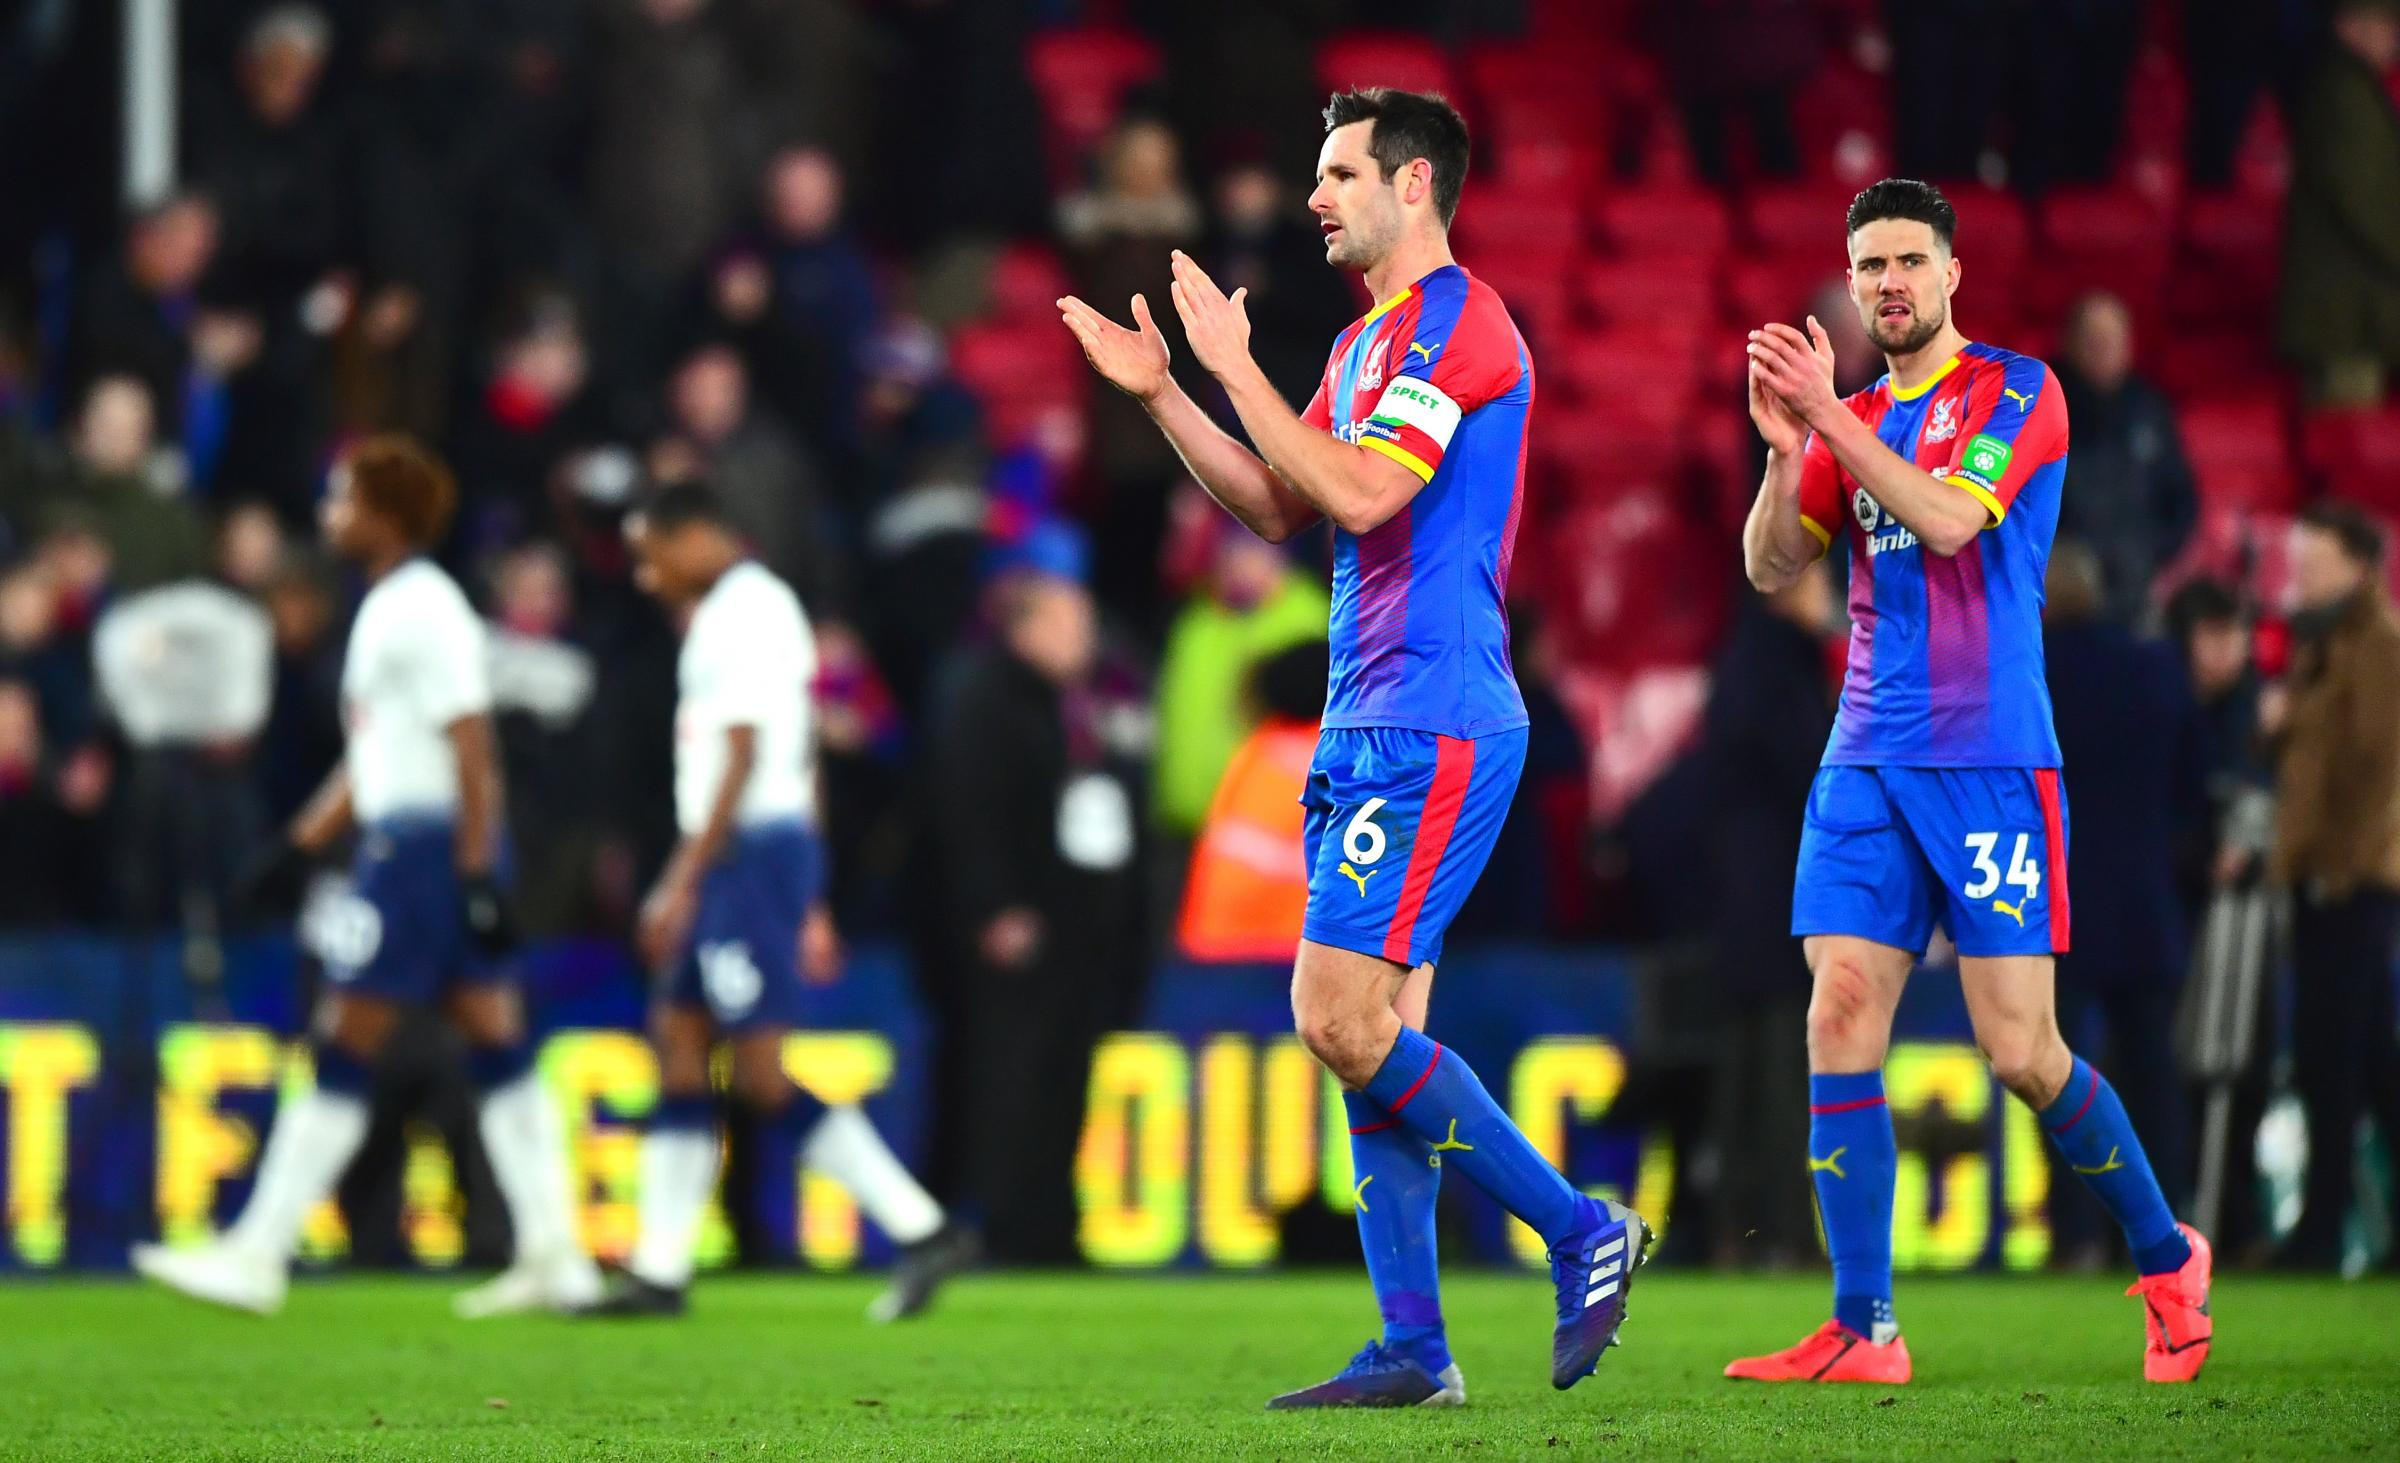 Crystal Palace's Martin Kelly (right) and Scott Dann celebrate victory after the FA Cup fourth round match at Selhurst Park, London.